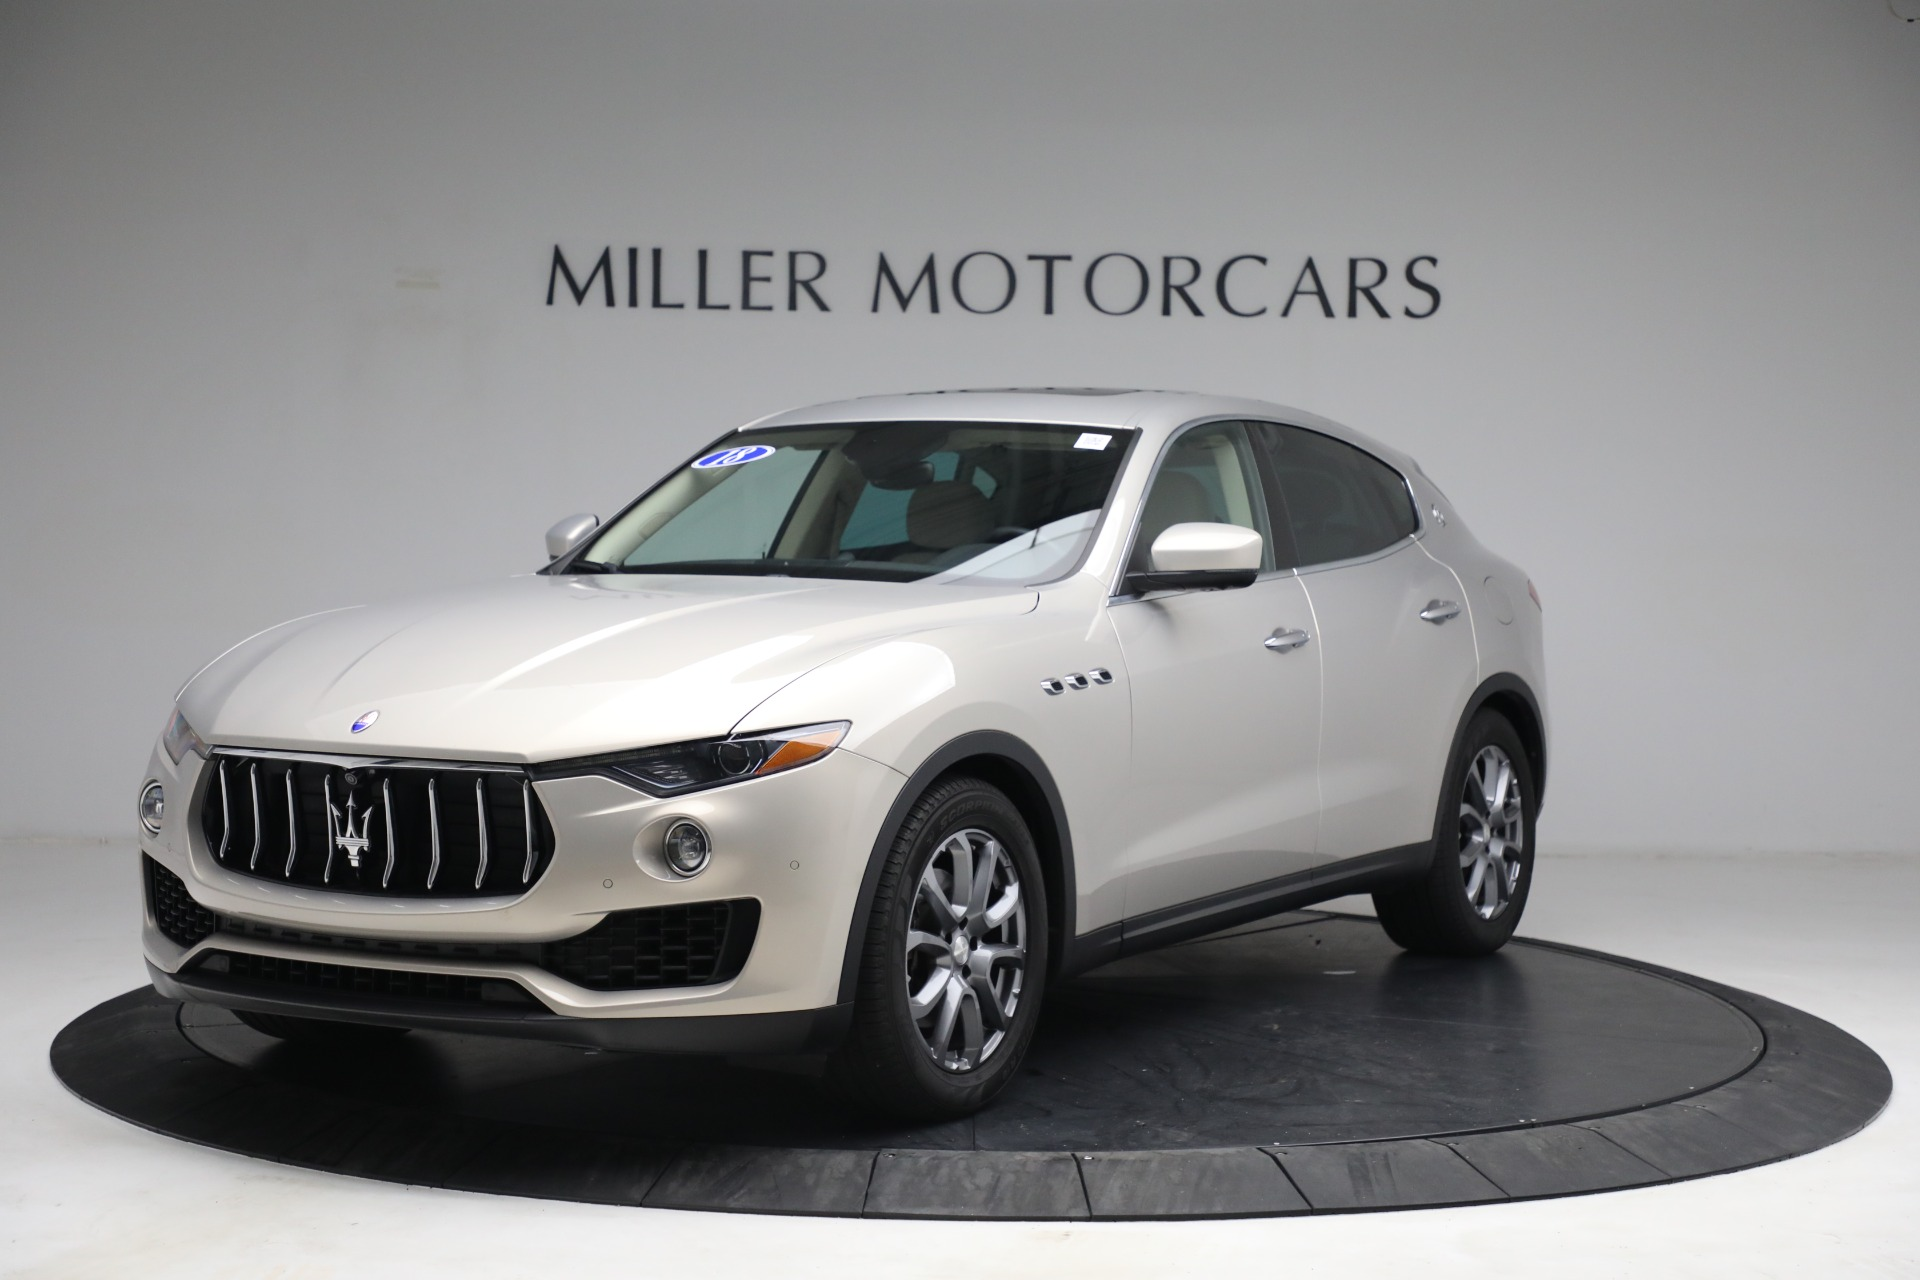 Used 2018 Maserati Levante for sale $57,900 at Bentley Greenwich in Greenwich CT 06830 1